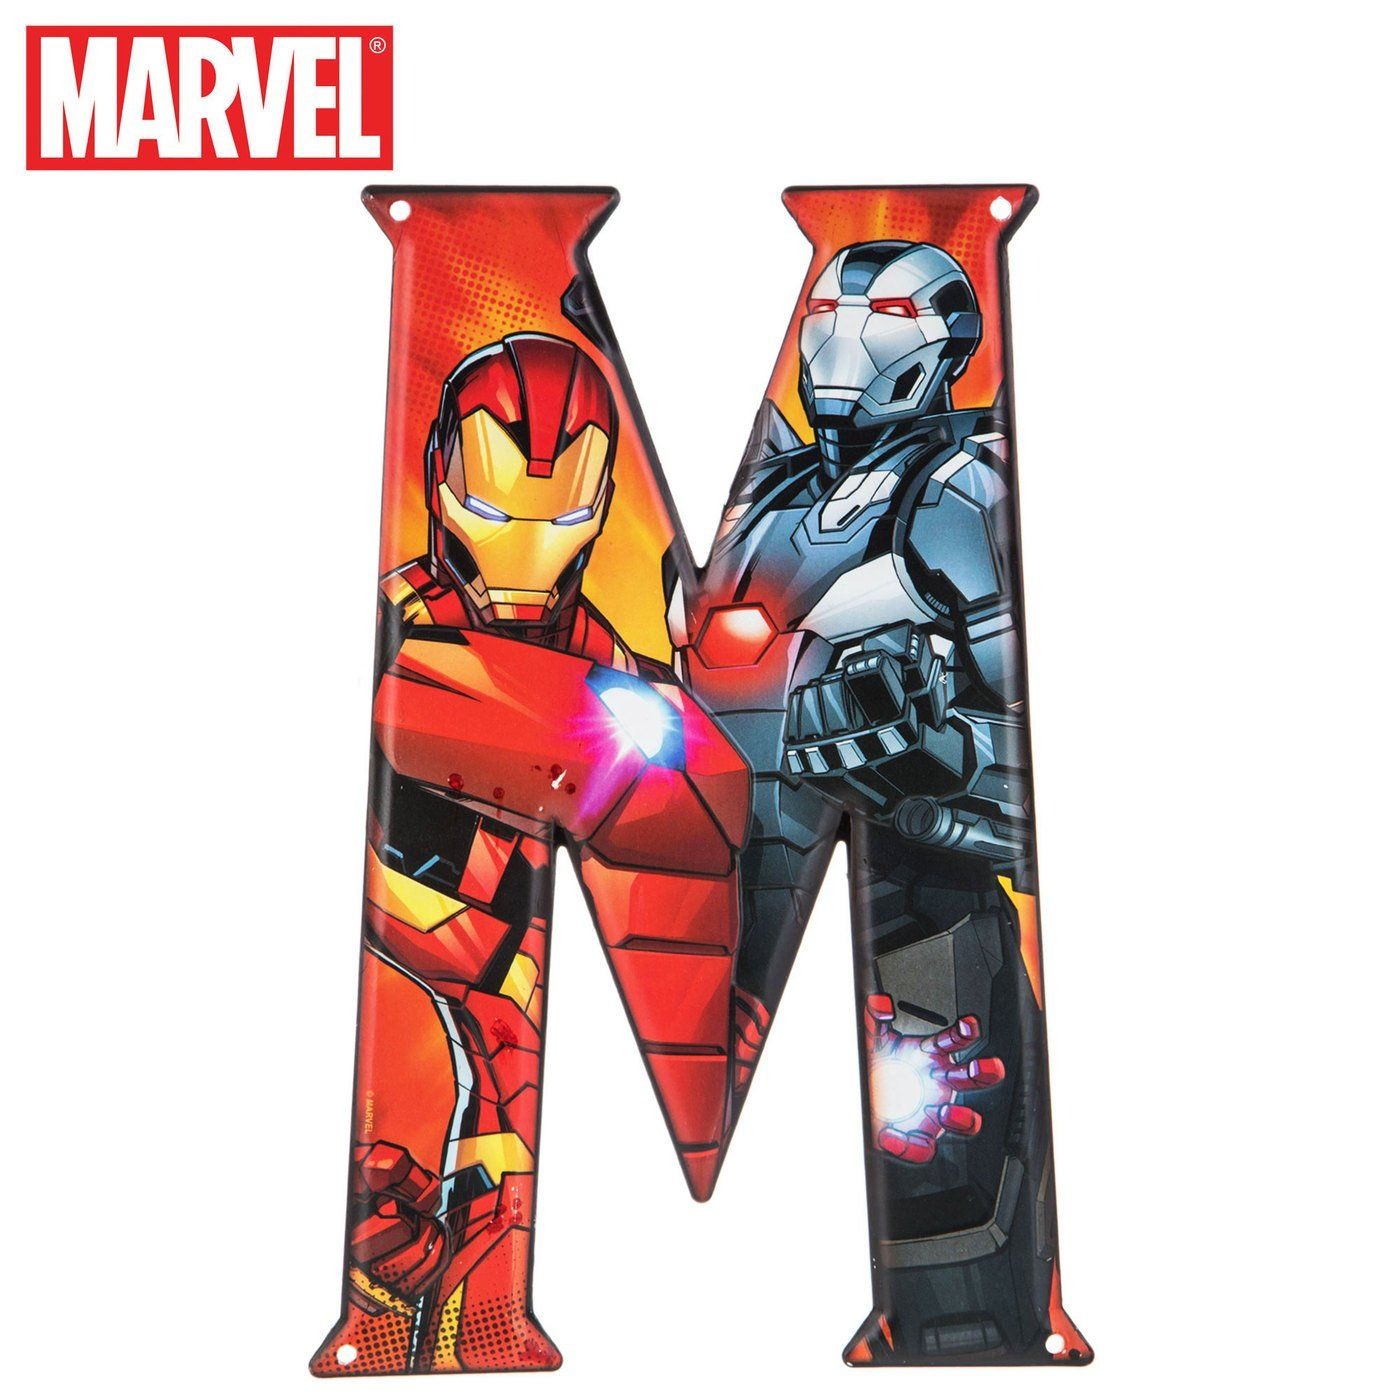 Superhero Letter Metal Wall Decor Marvel And Dc Comic